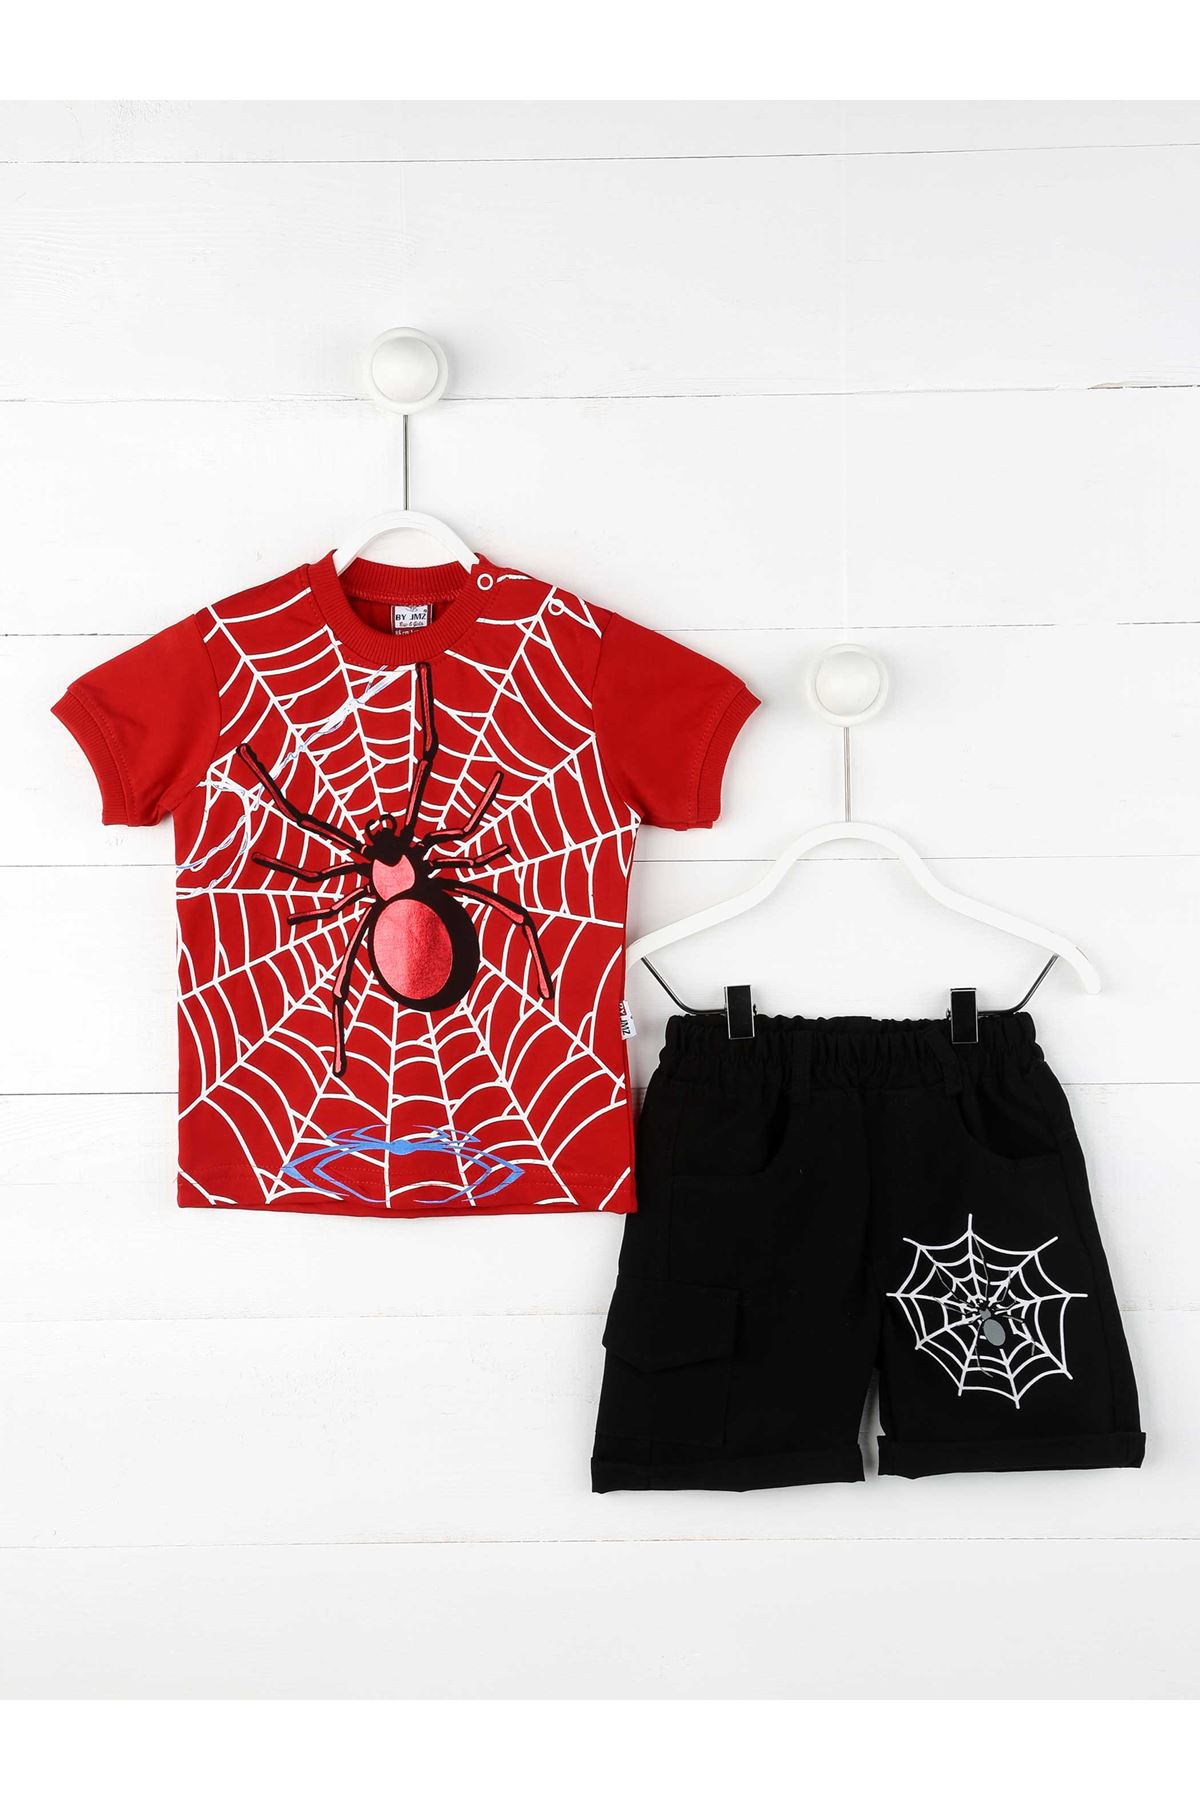 Red Summer Shorts Male Child Suit